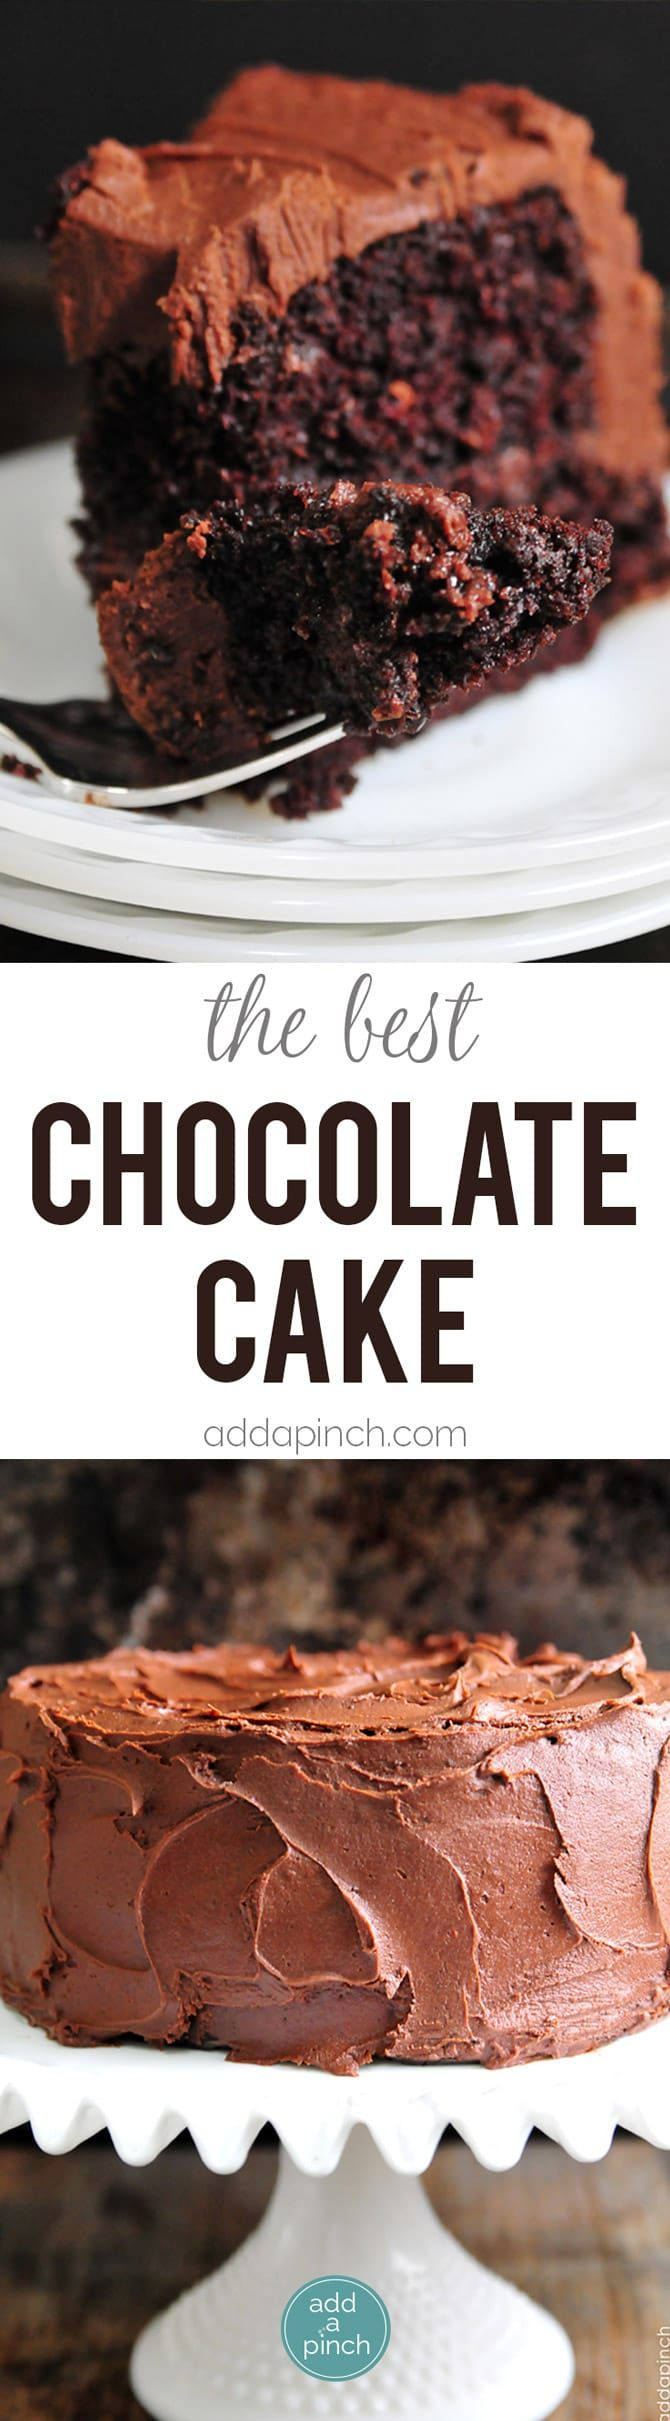 The Best Chocolate Cake Recipe  A one bowl chocolate cake recipe that is quick easy and delicious Updated with glutenfree dairyfree and eggfree options The best chocolate cake recipe Ever There are plenty of claims for the best chocolate cake recipe I get that But with one bite of this decadent moist chocolate cake